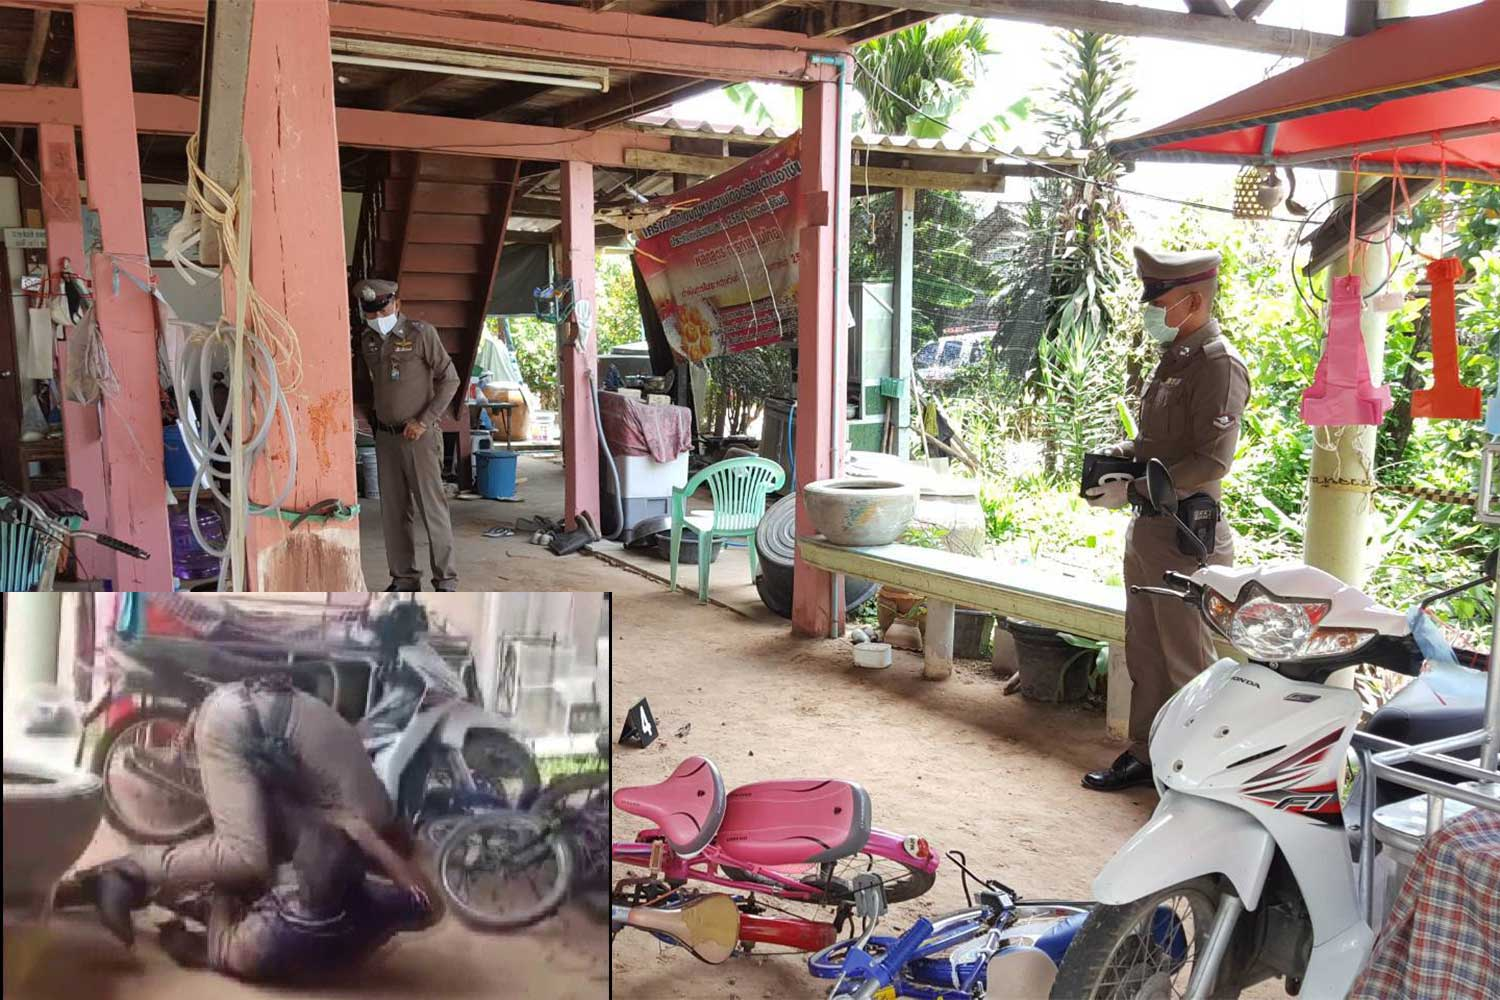 Police at the scene of the shooting at a house in Krasang district, Buri Ram. A police senior sergeant major has been charged with attempted murder after shooting his neighbour over the loud music played by the victim's son. Inset taken from the daughter's video. (Main photo: Surachai Piragsa)